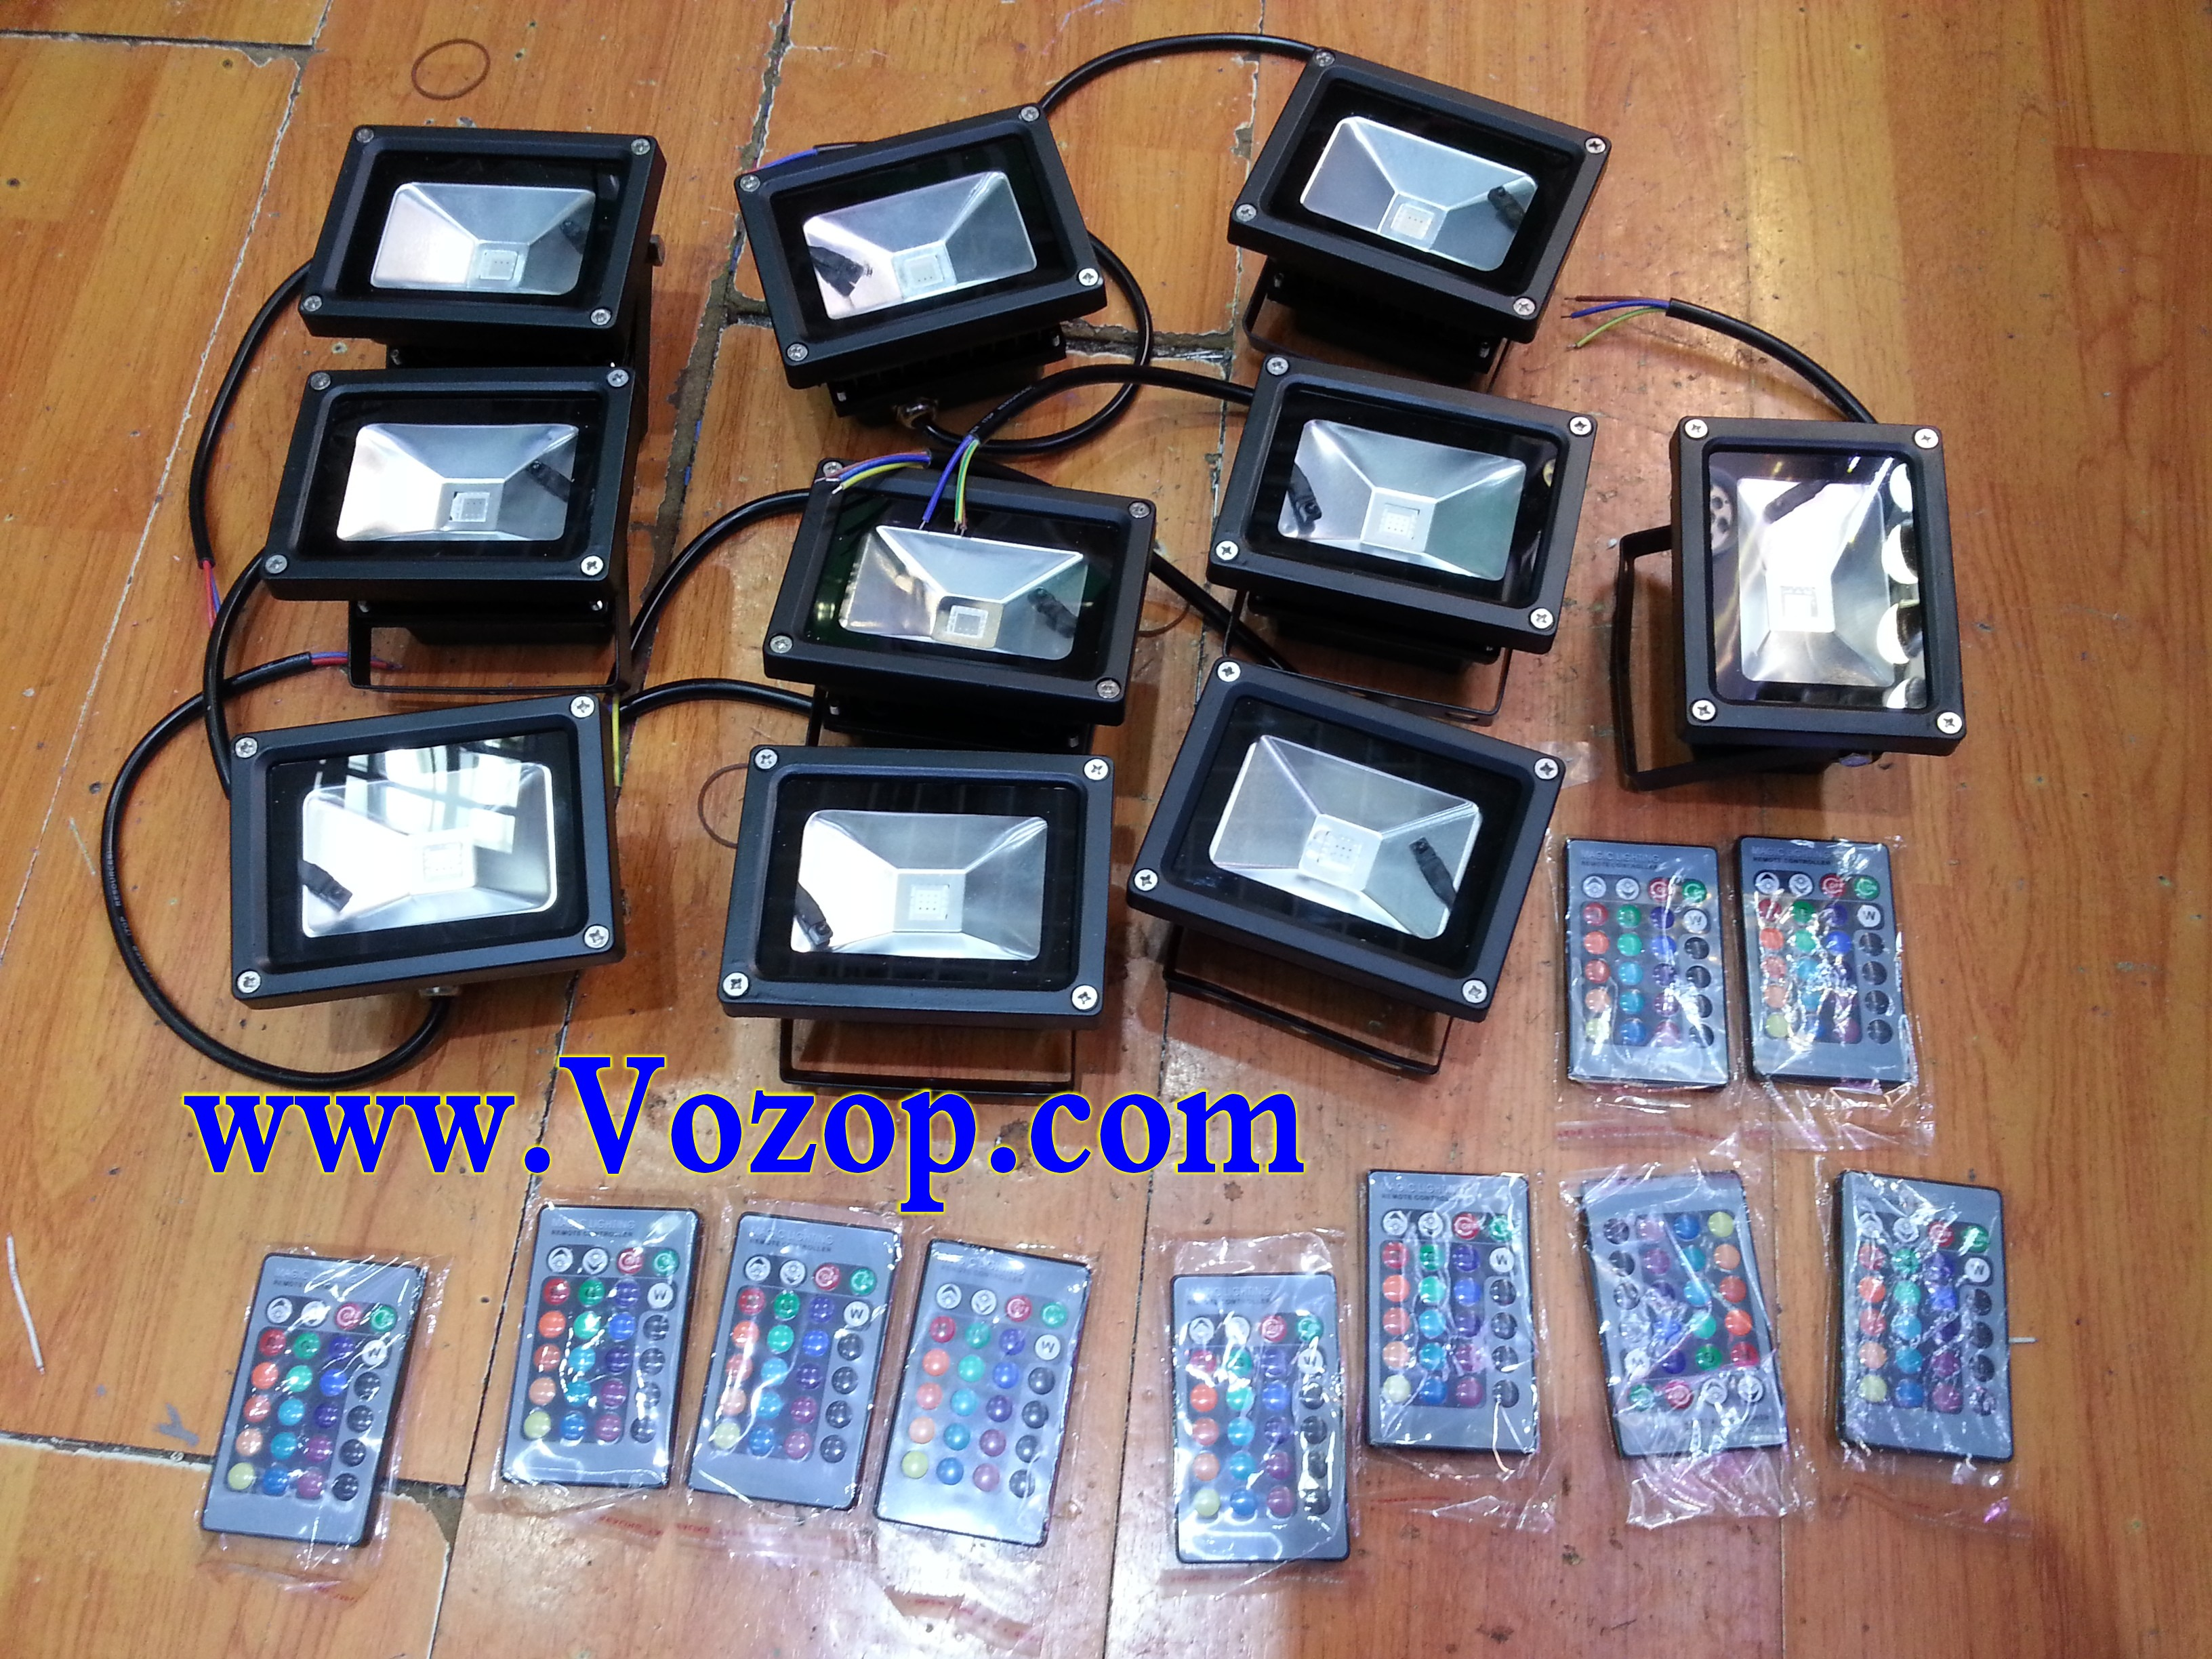 black_outlook_10W_RGB_Floodlight_with_Memory_Function